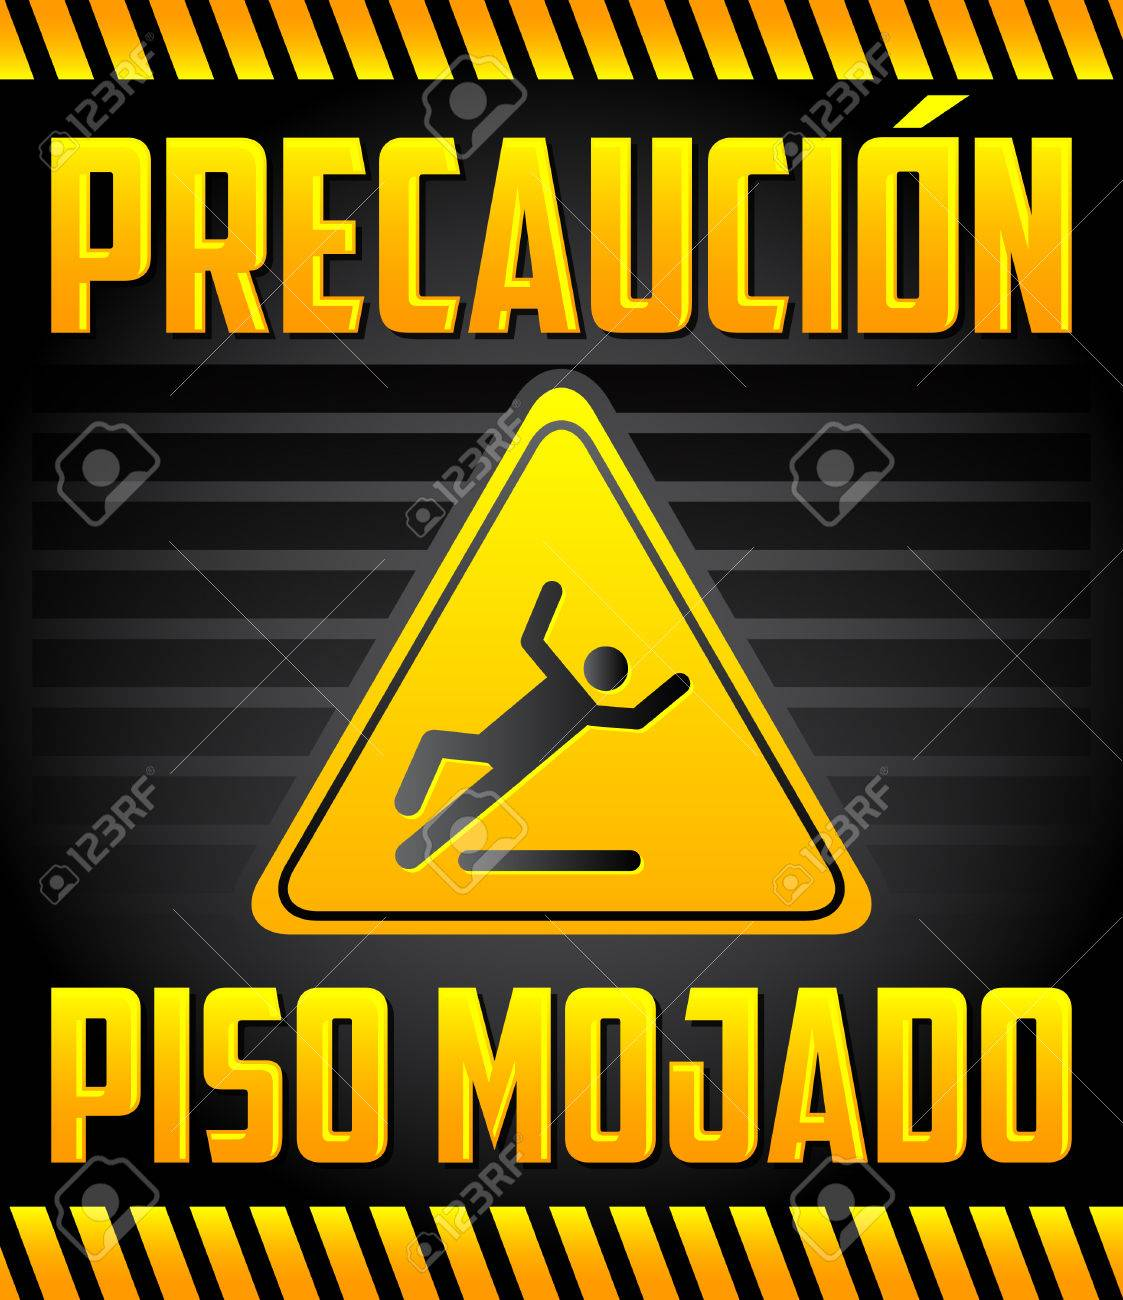 Piso Mojado Precaucion   Caution Wet Floor Spanish Text   Warning And  Cleaning In Progress Sign